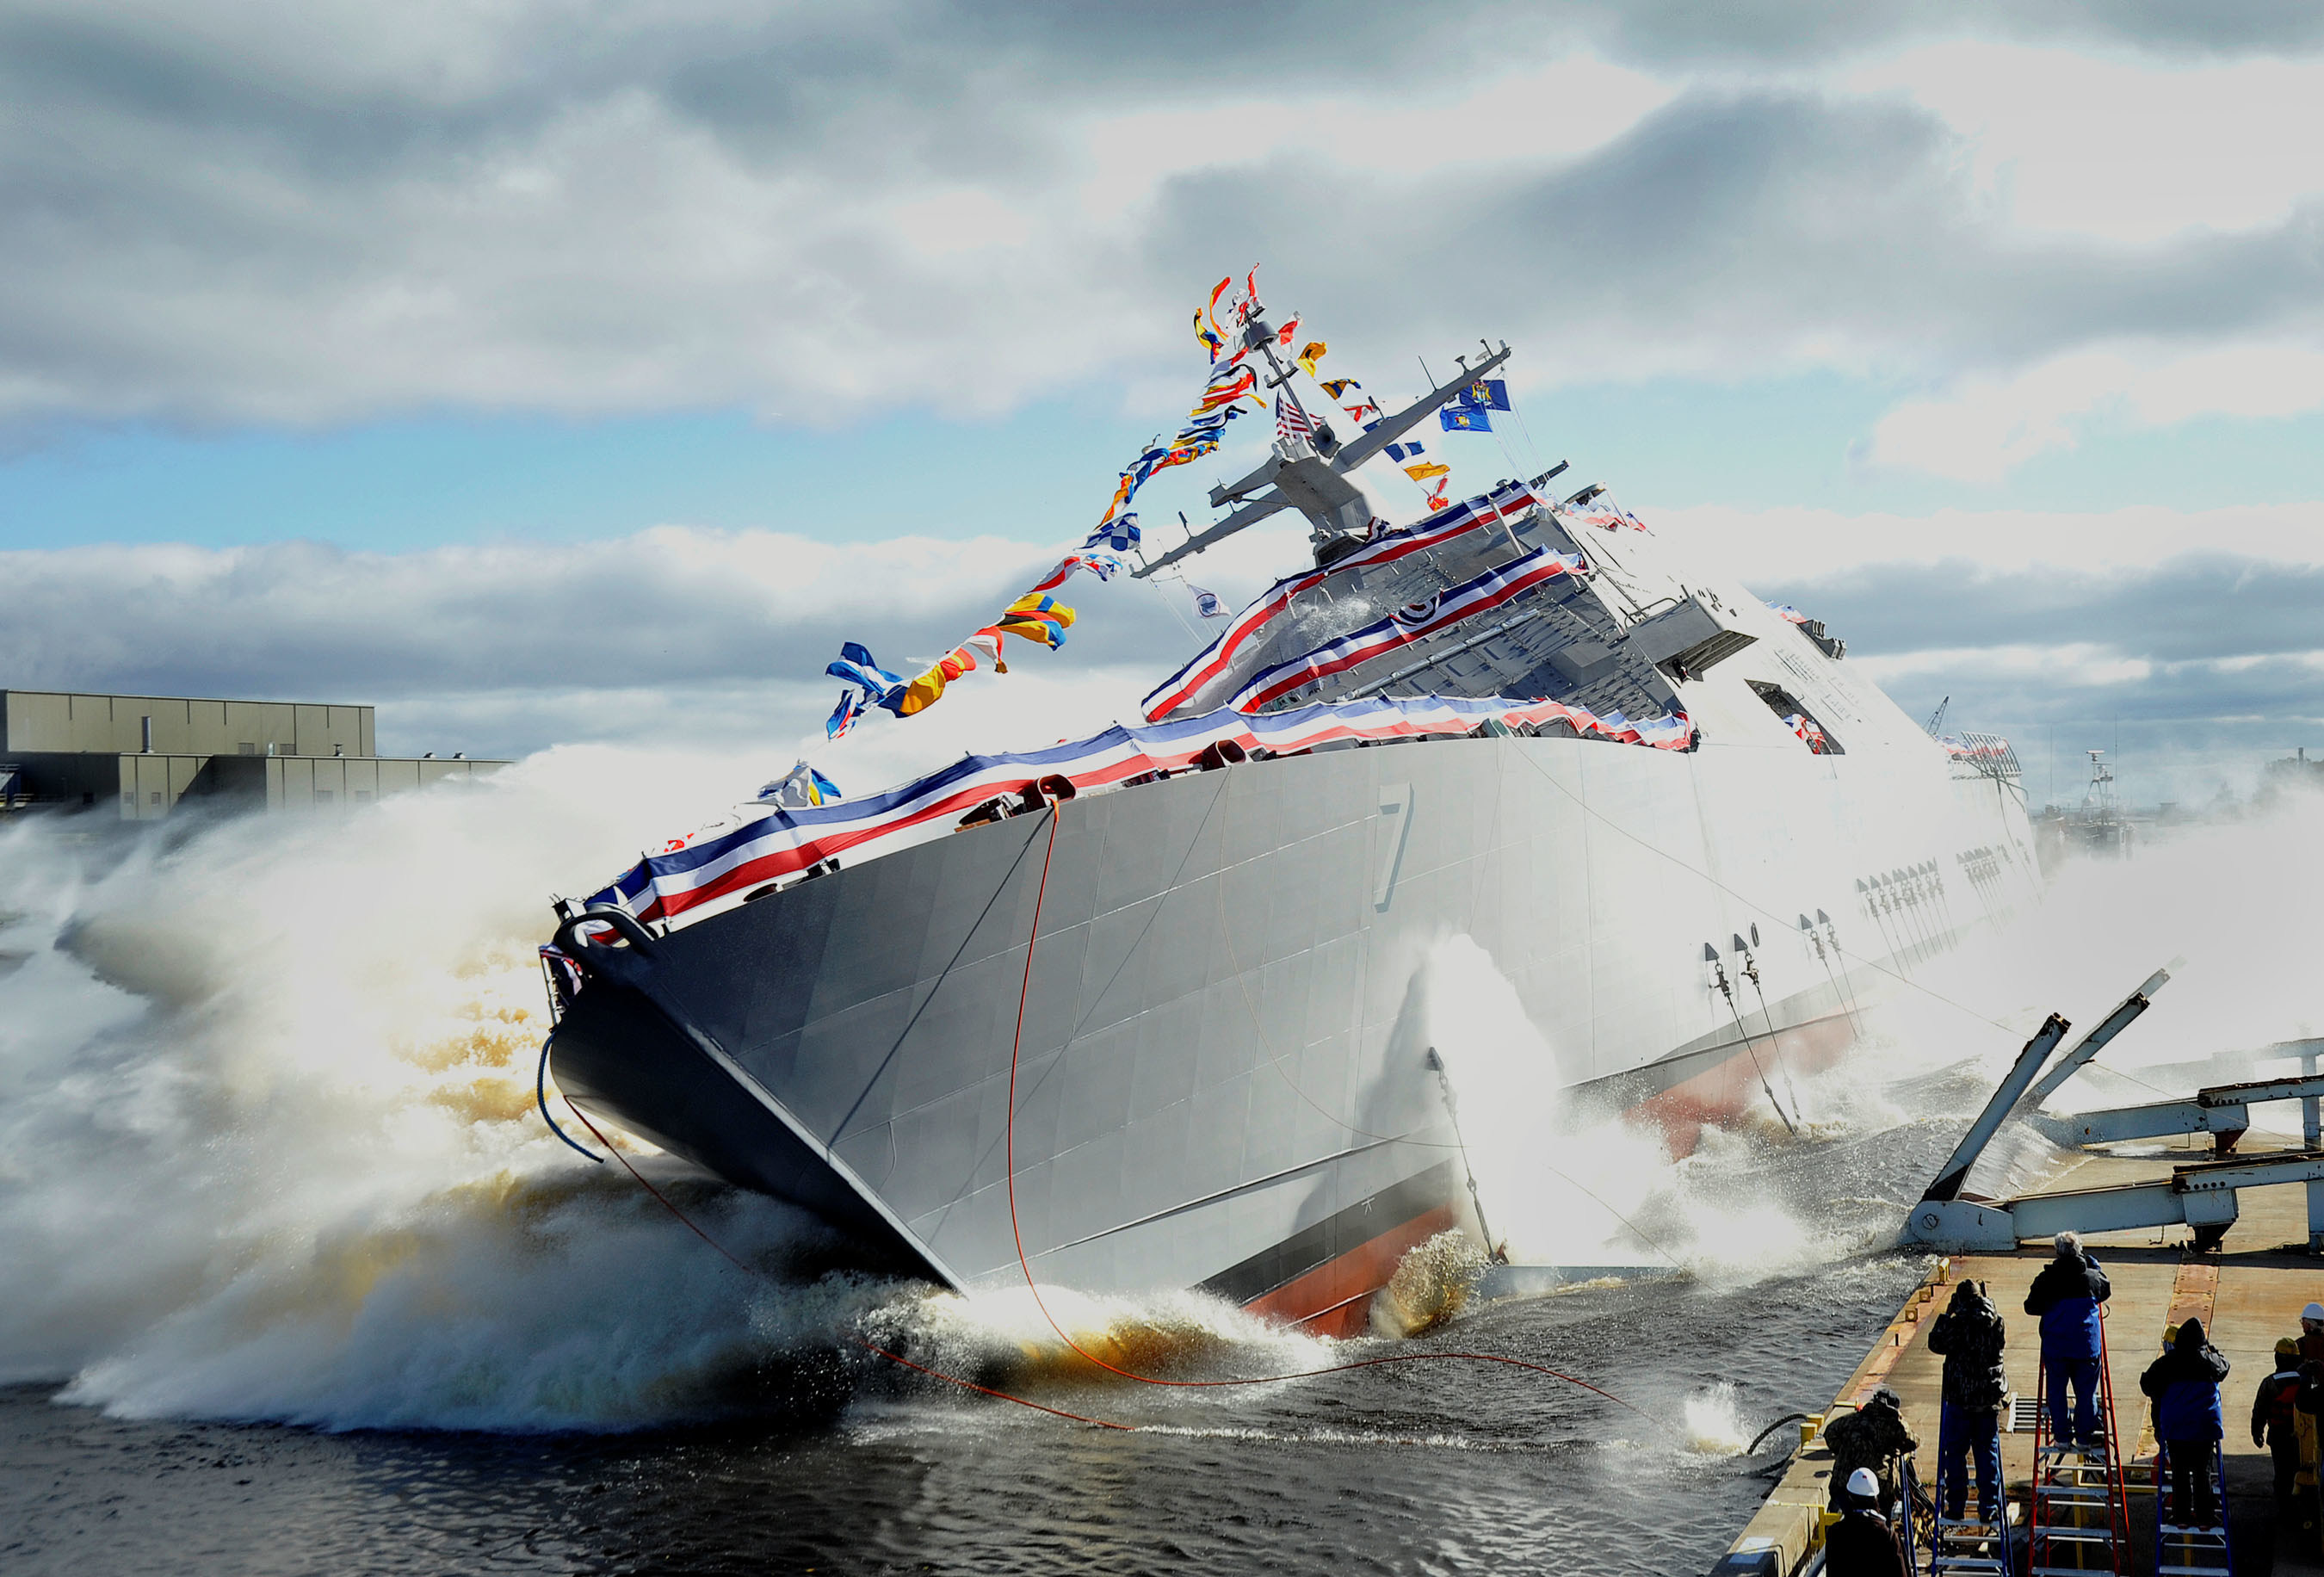 The seventh littoral combat ship, the future USS Detroit, was christened and launched into the Menominee River ...